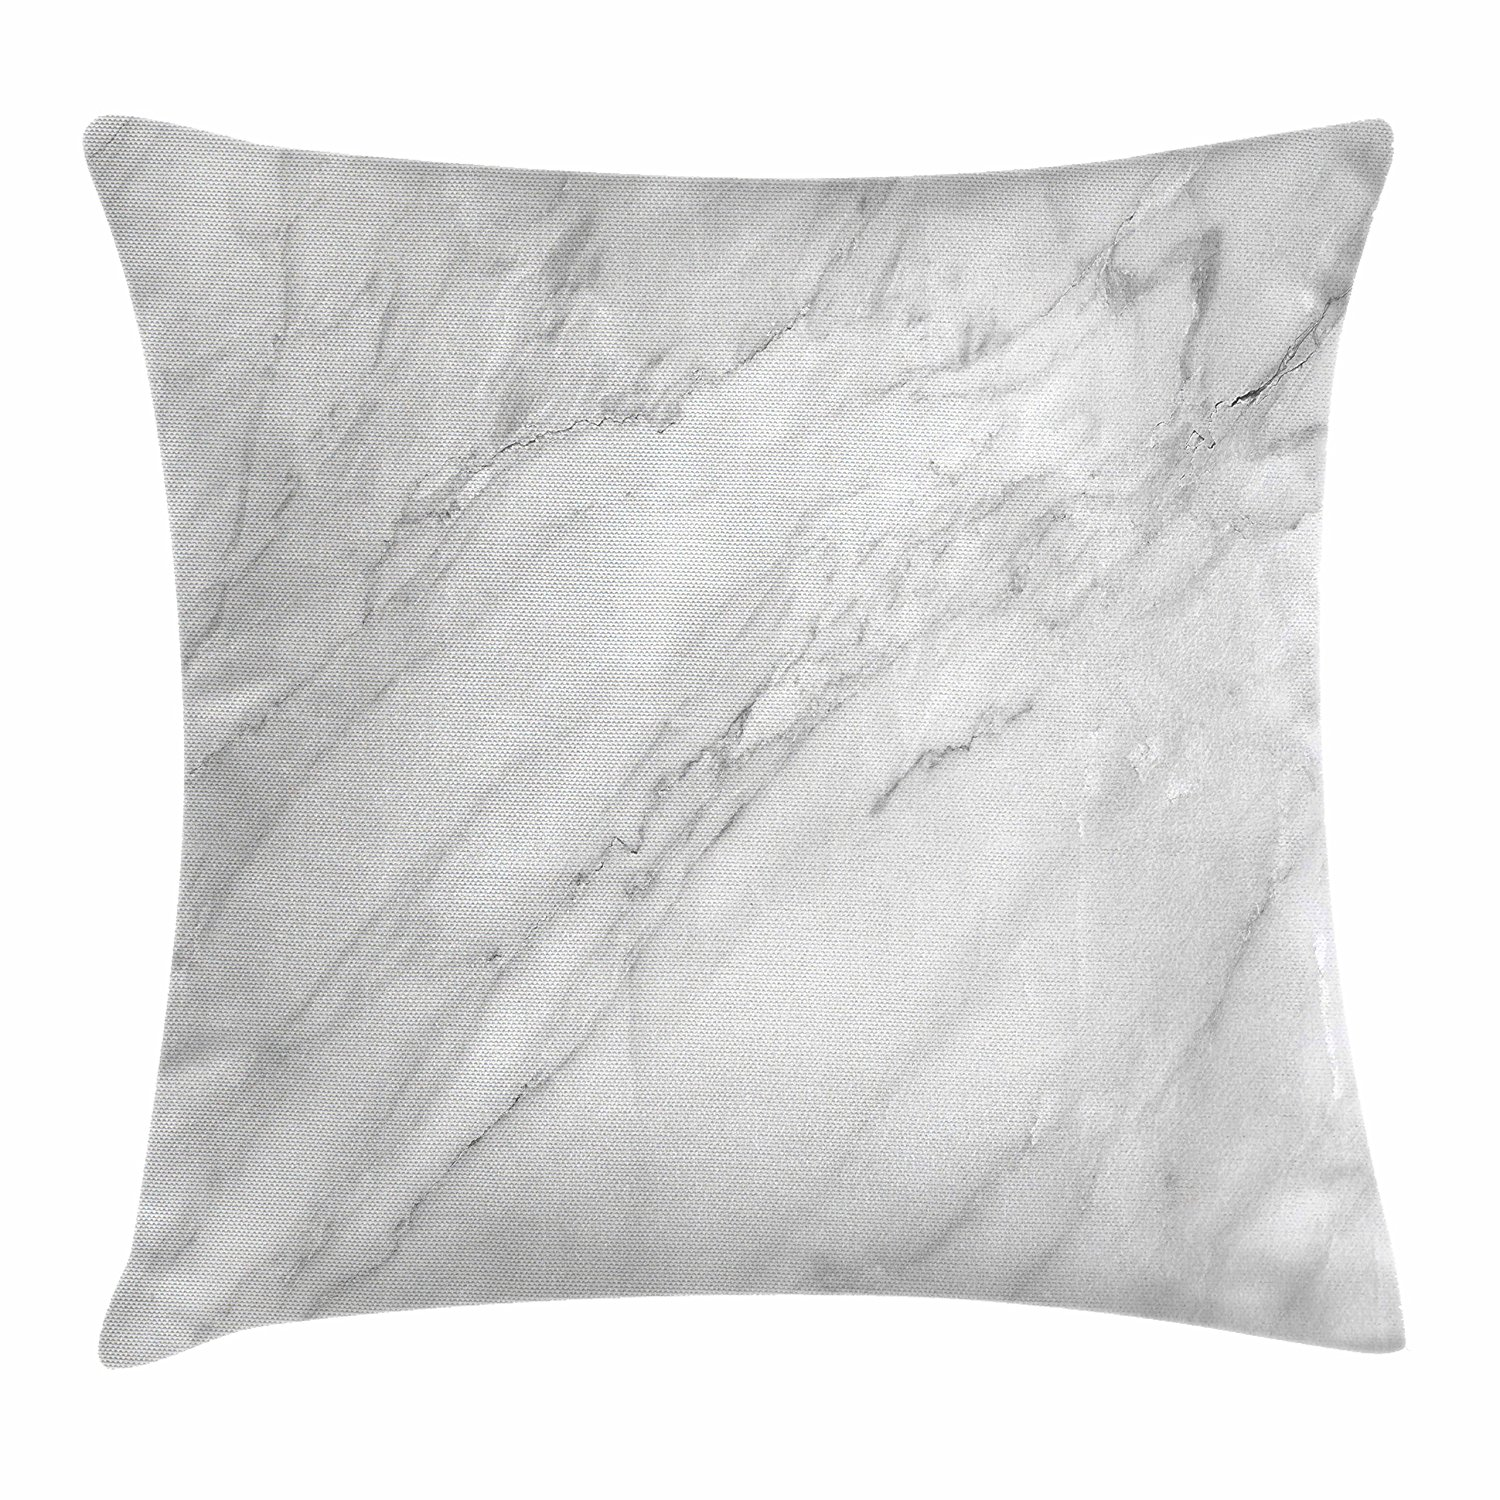 Ambesonne Marble Throw Pillow Cushion Cover, Stained Marbled Background Image Abstract Textures Monochromatic Design Print, Decorative Square Accent Pillow Case, 20 X 20 Inches, White Light Grey